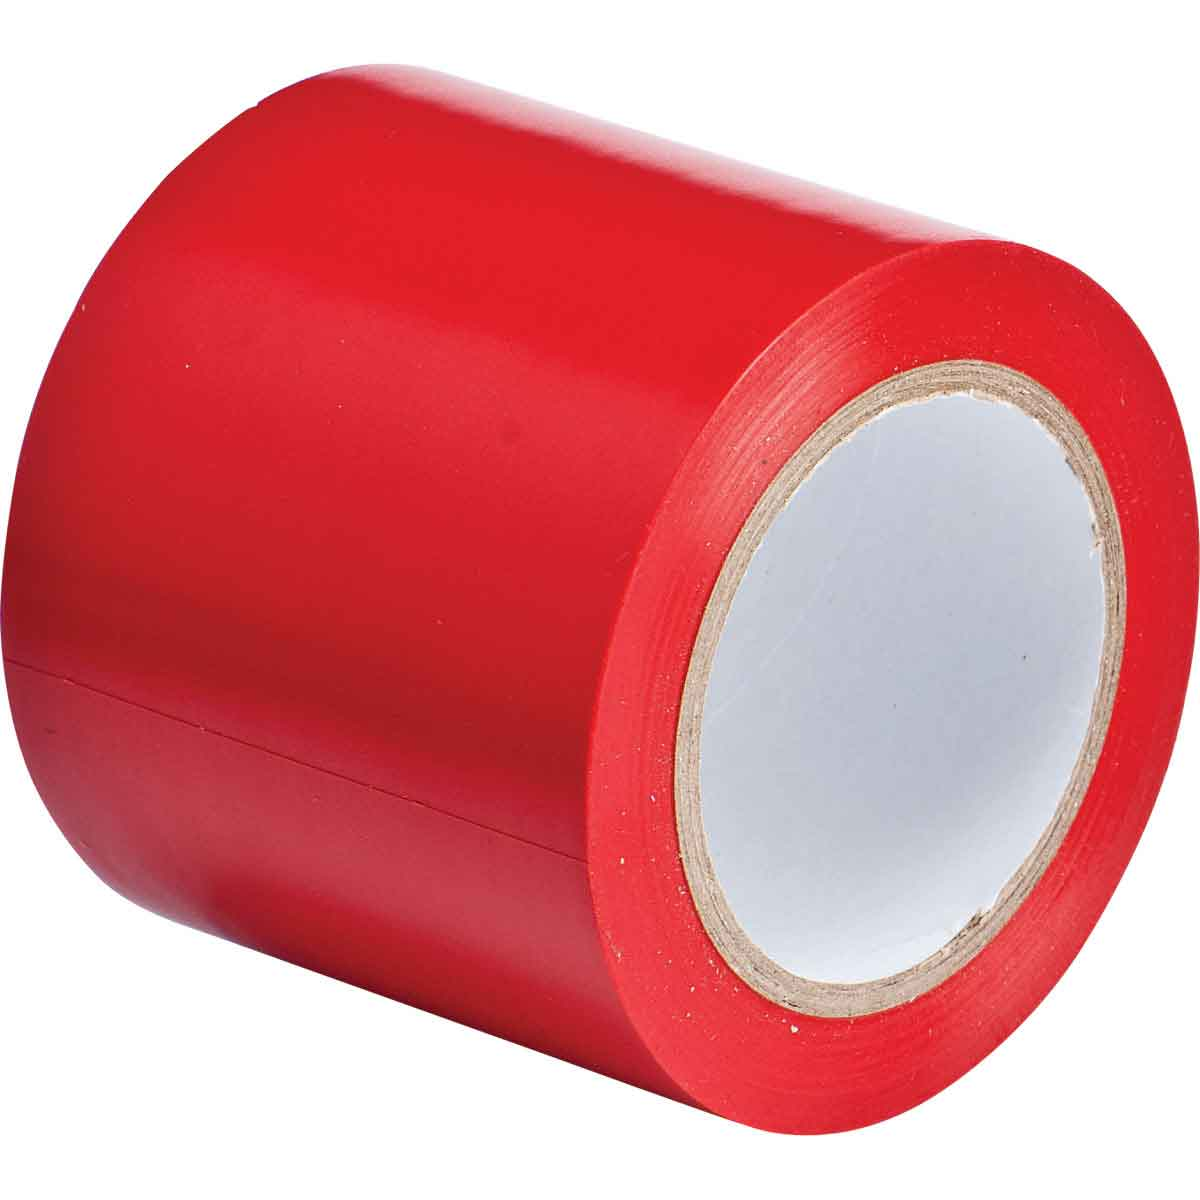 "BRADY 102836 B726 Aisle MarkingTape Red 4"" X 36 YARDS"